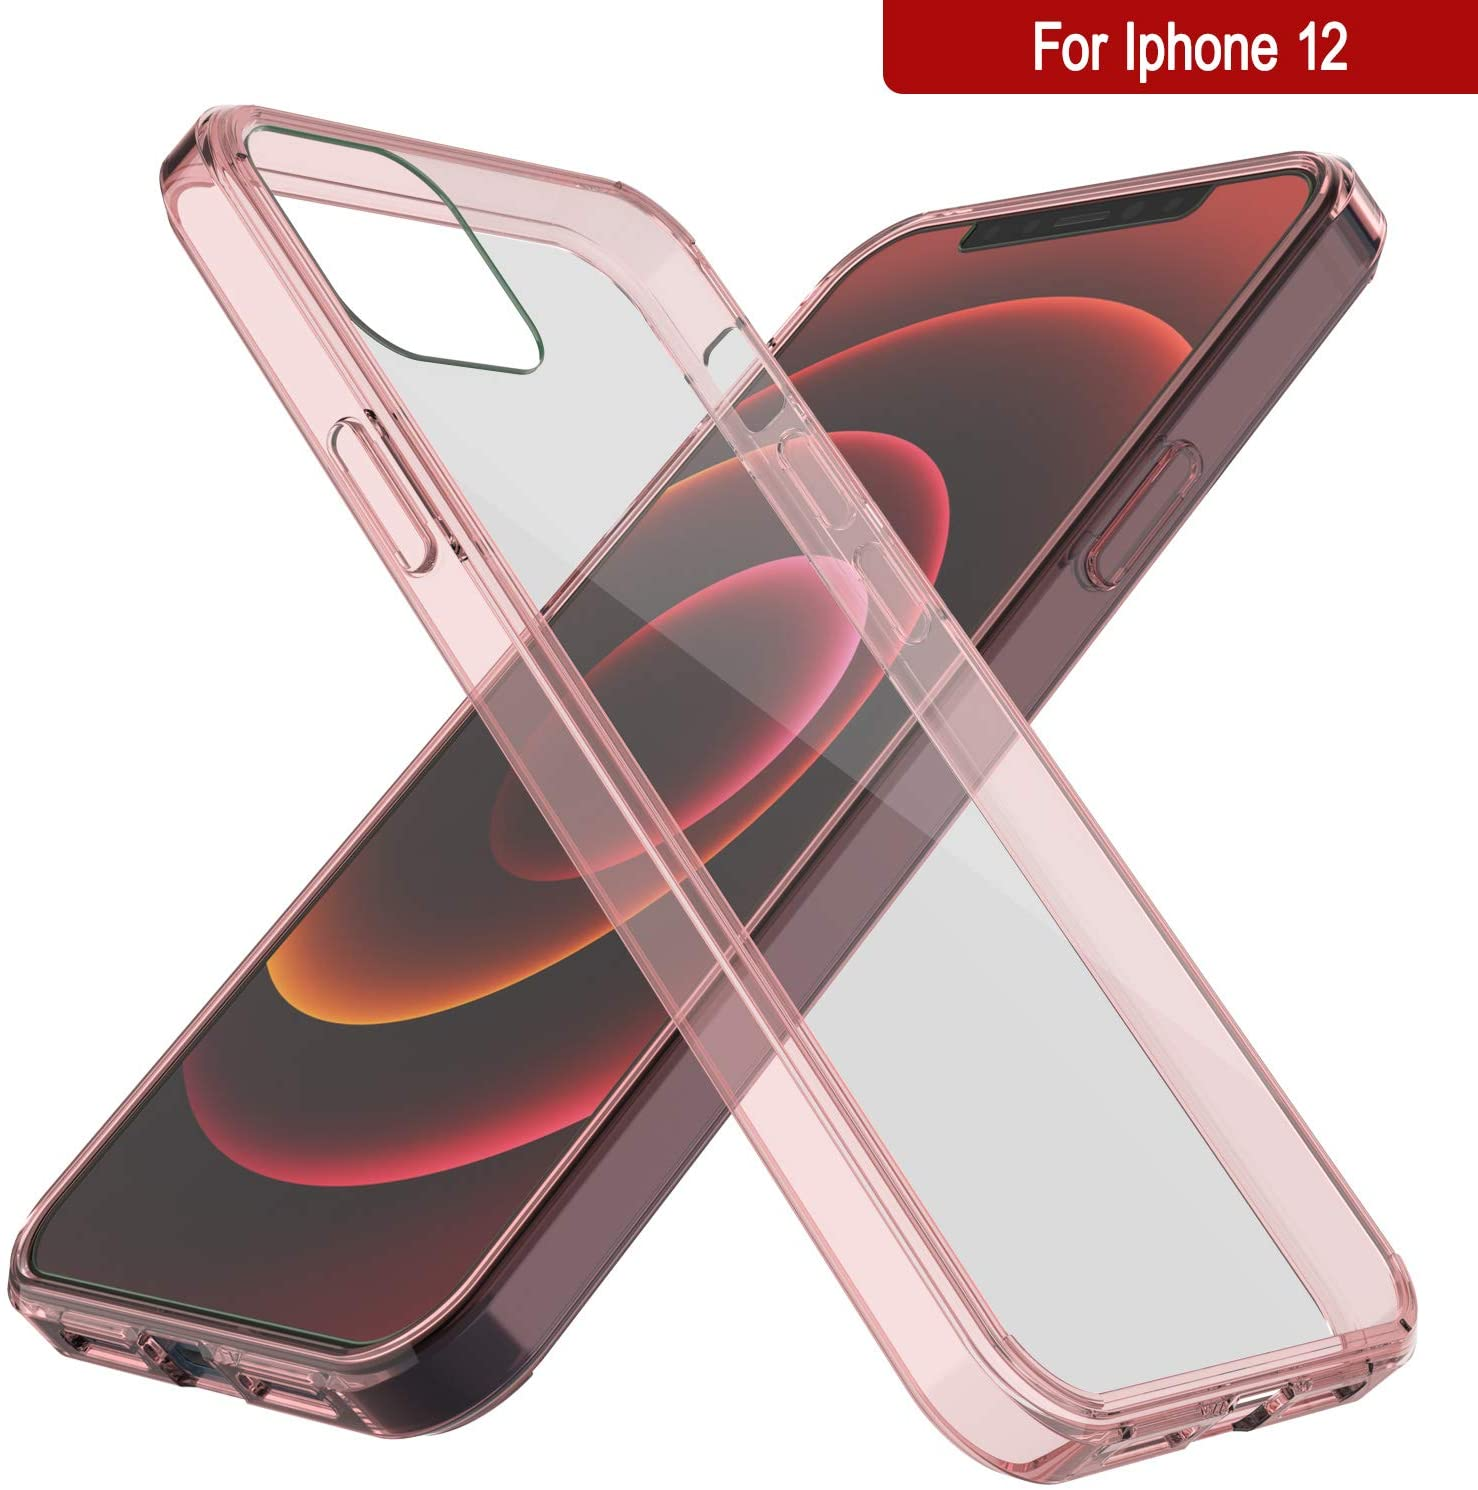 iPhone 12 Case Punkcase® LUCID 2.0 Crystal Pink Series w/ PUNK SHIELD Screen Protector | Ultra Fit